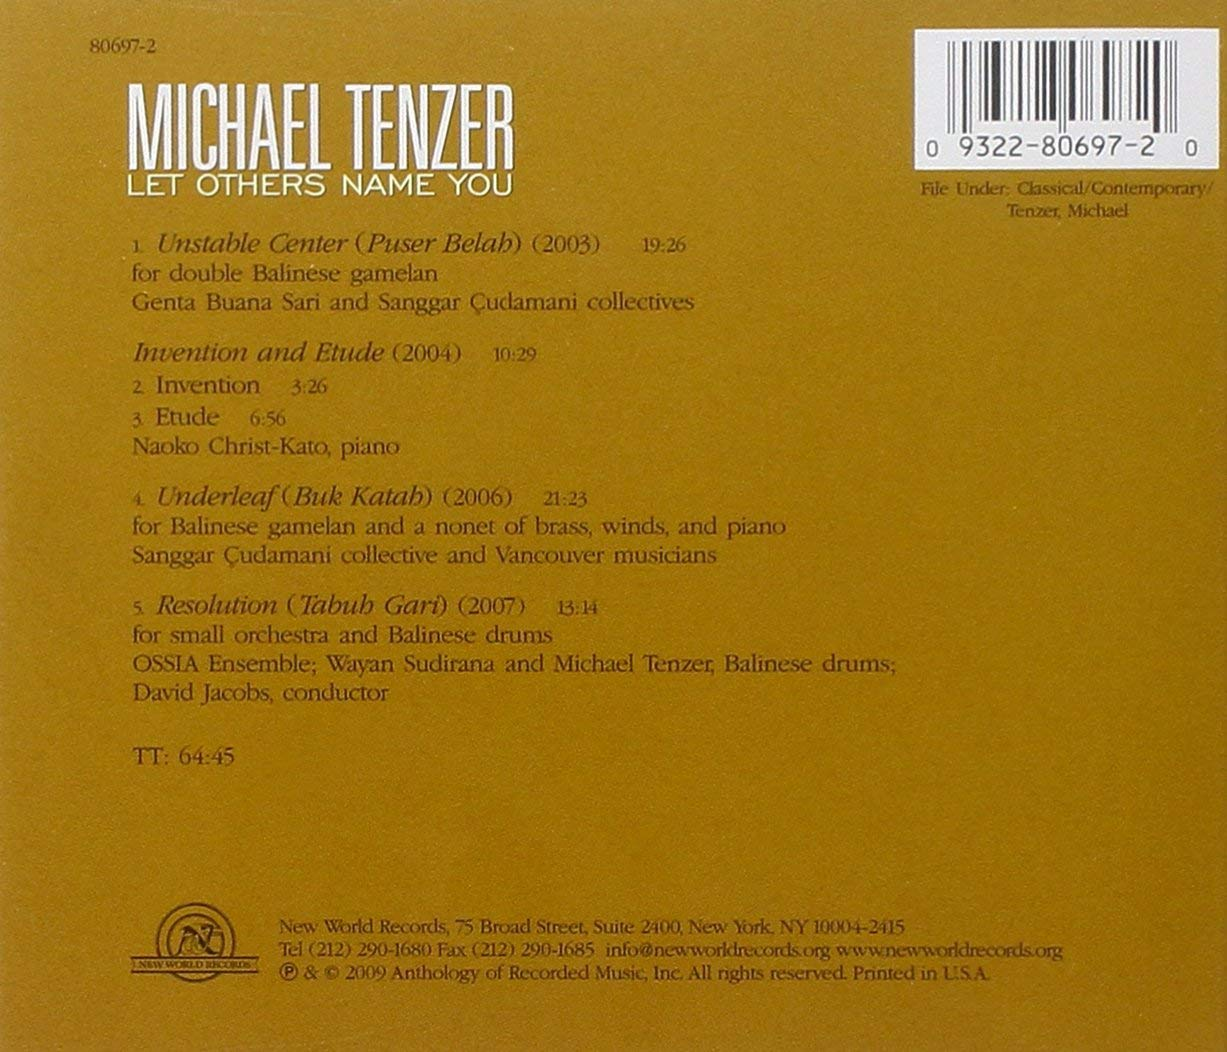 Michael Tenzer: Let others name you